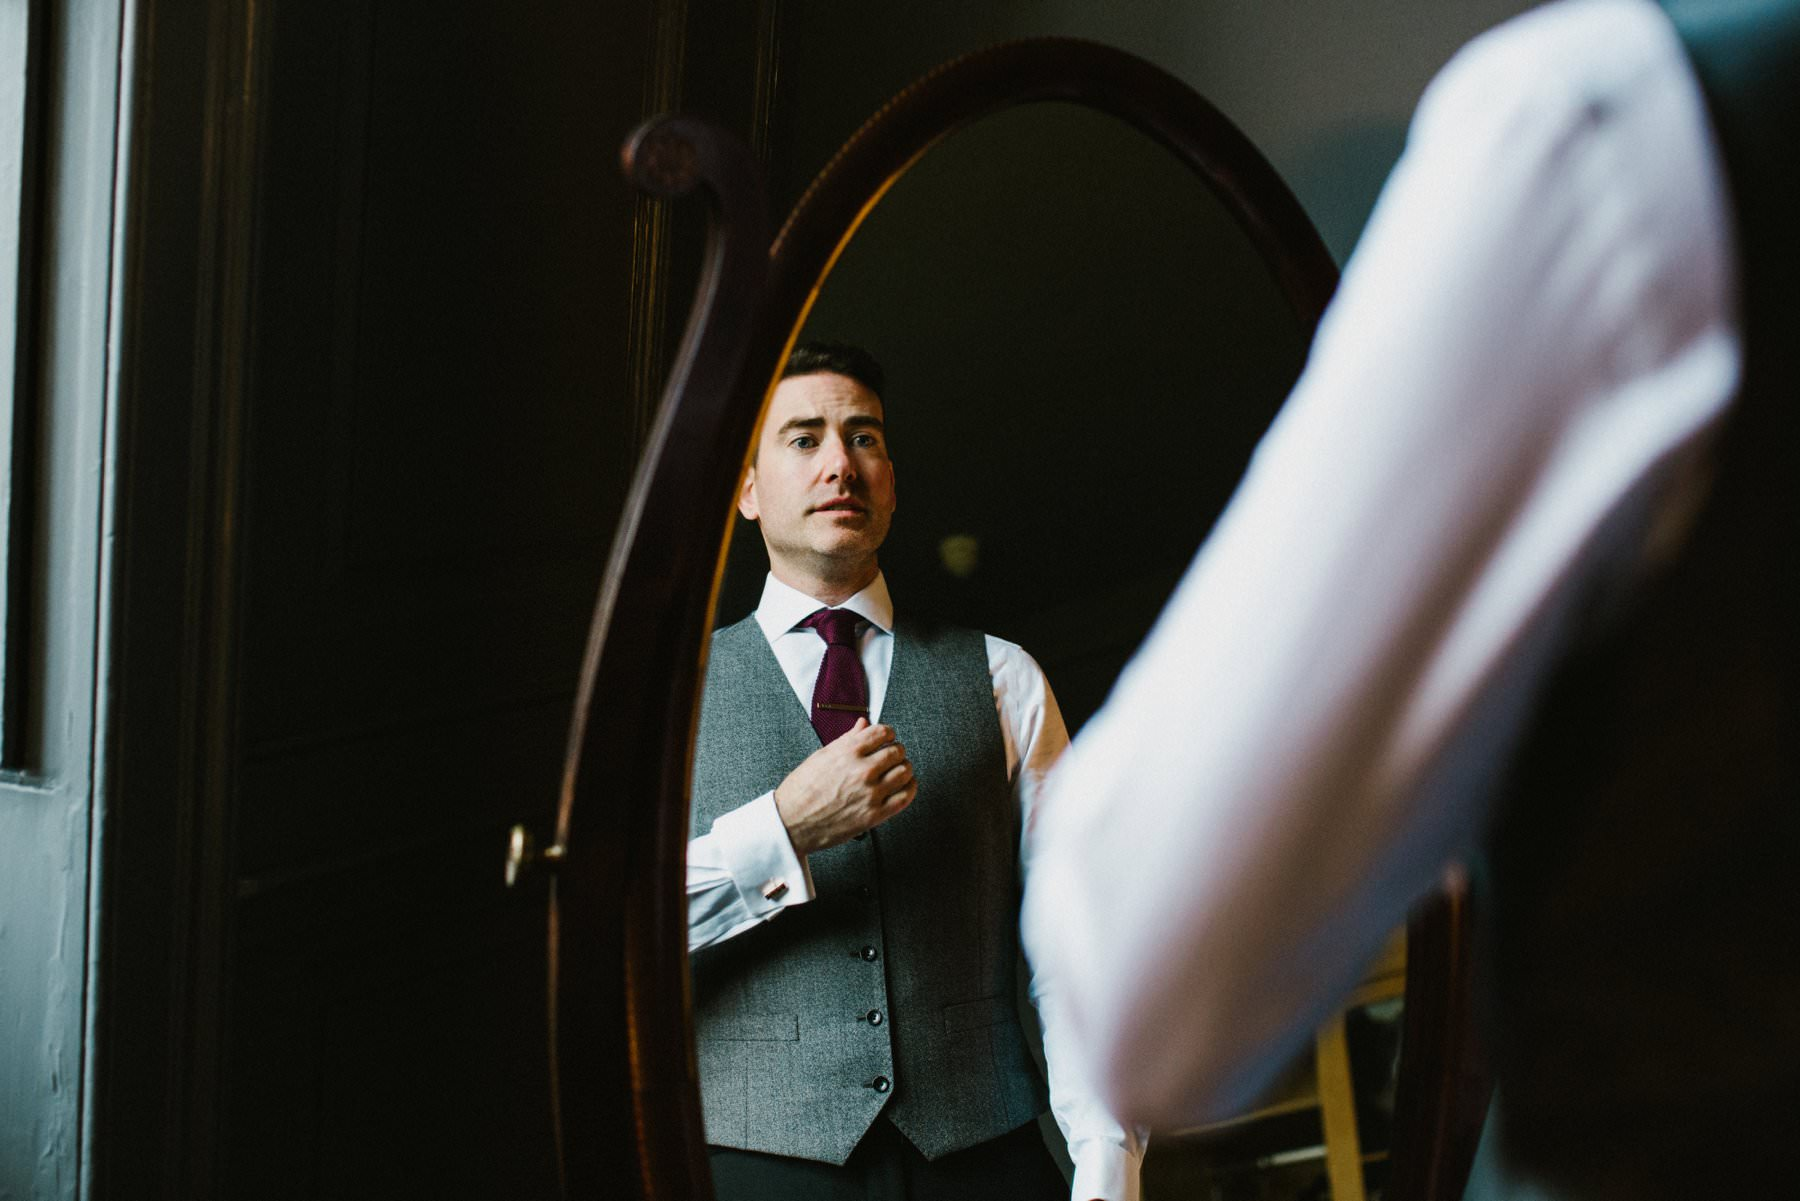 grooms in grey waistcoat and burgundy tie checks himself in the mirror before his wedding at Bellinter House